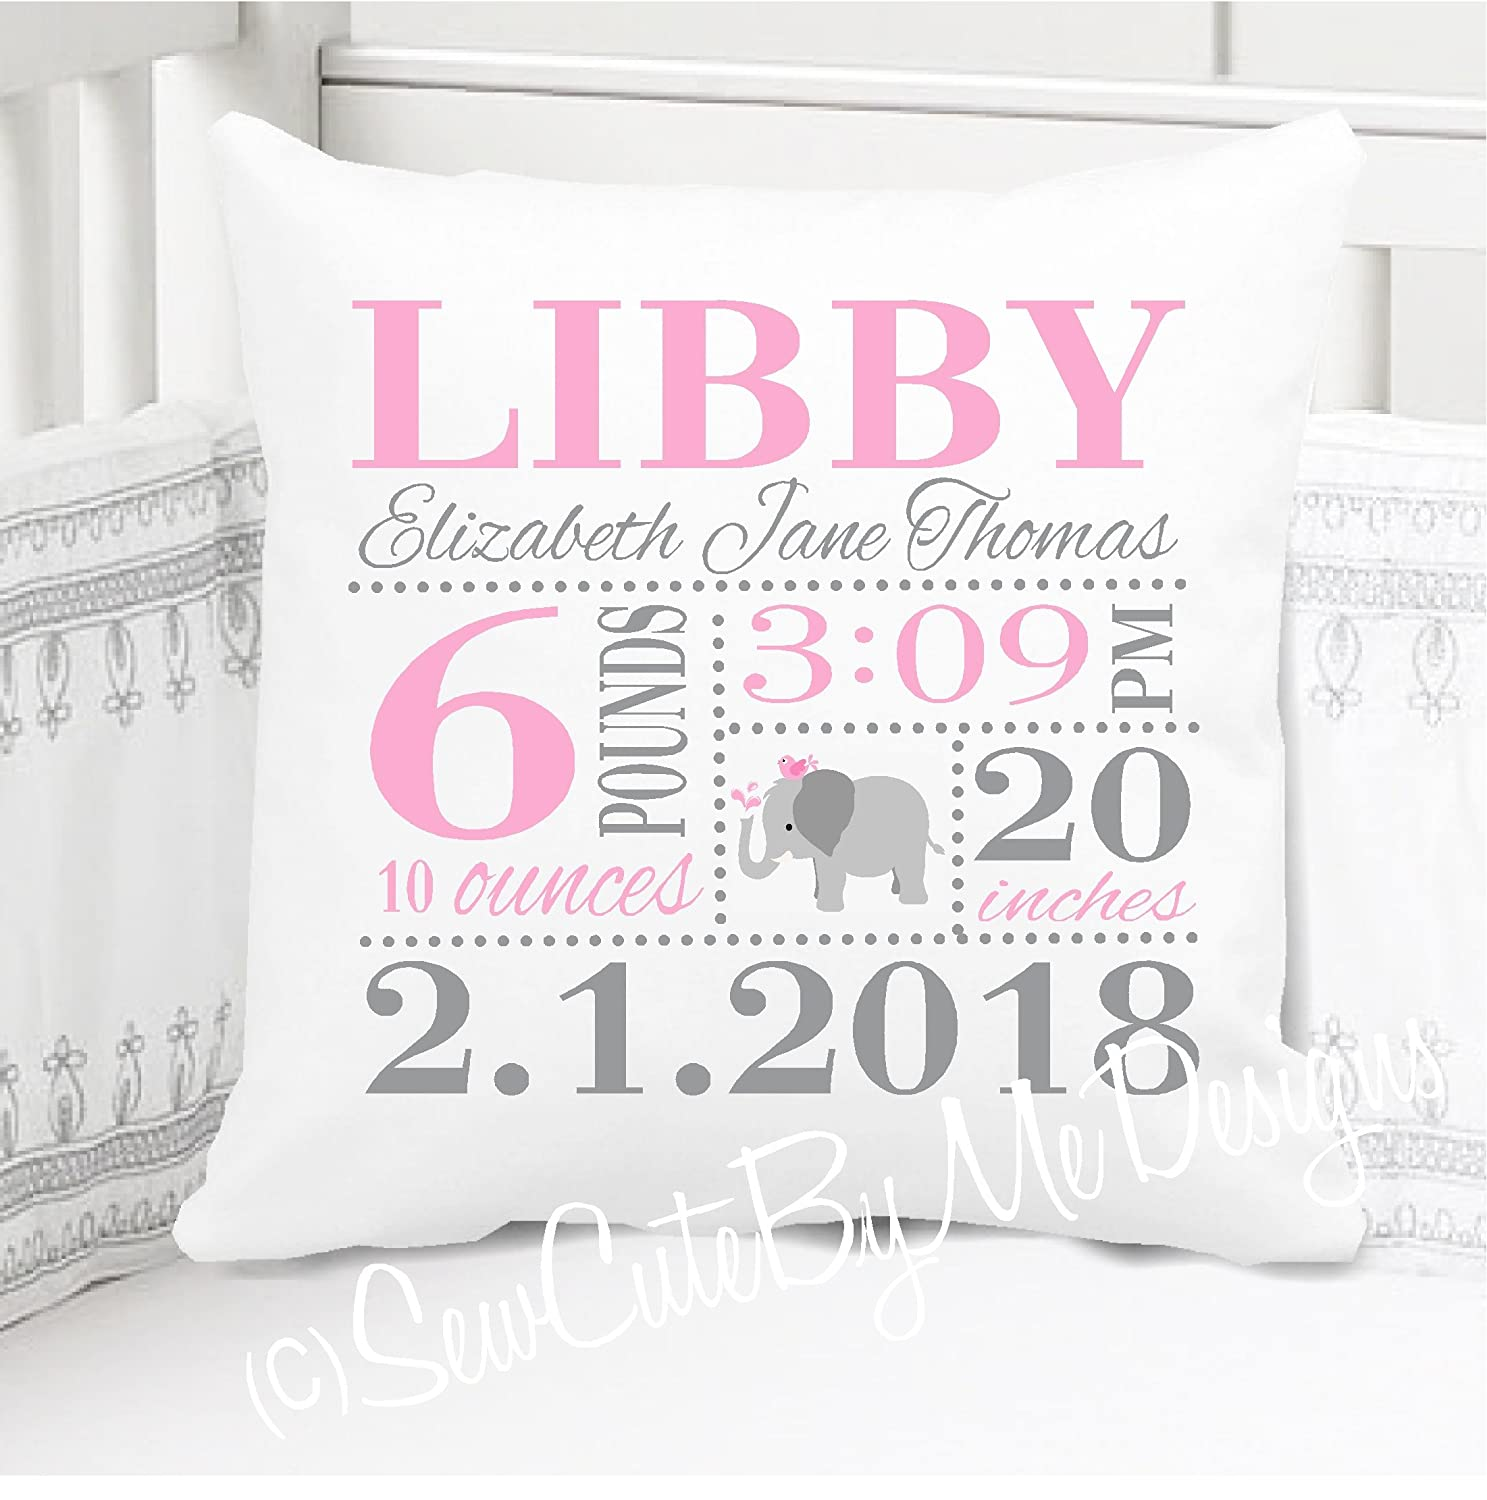 Sew Cute by Me Designs Original Birth Announcement Pillow for Baby Girls Elephant Nursery in Pink and Grey - Includes Personalized Pillowcase and Pillow Insert 14